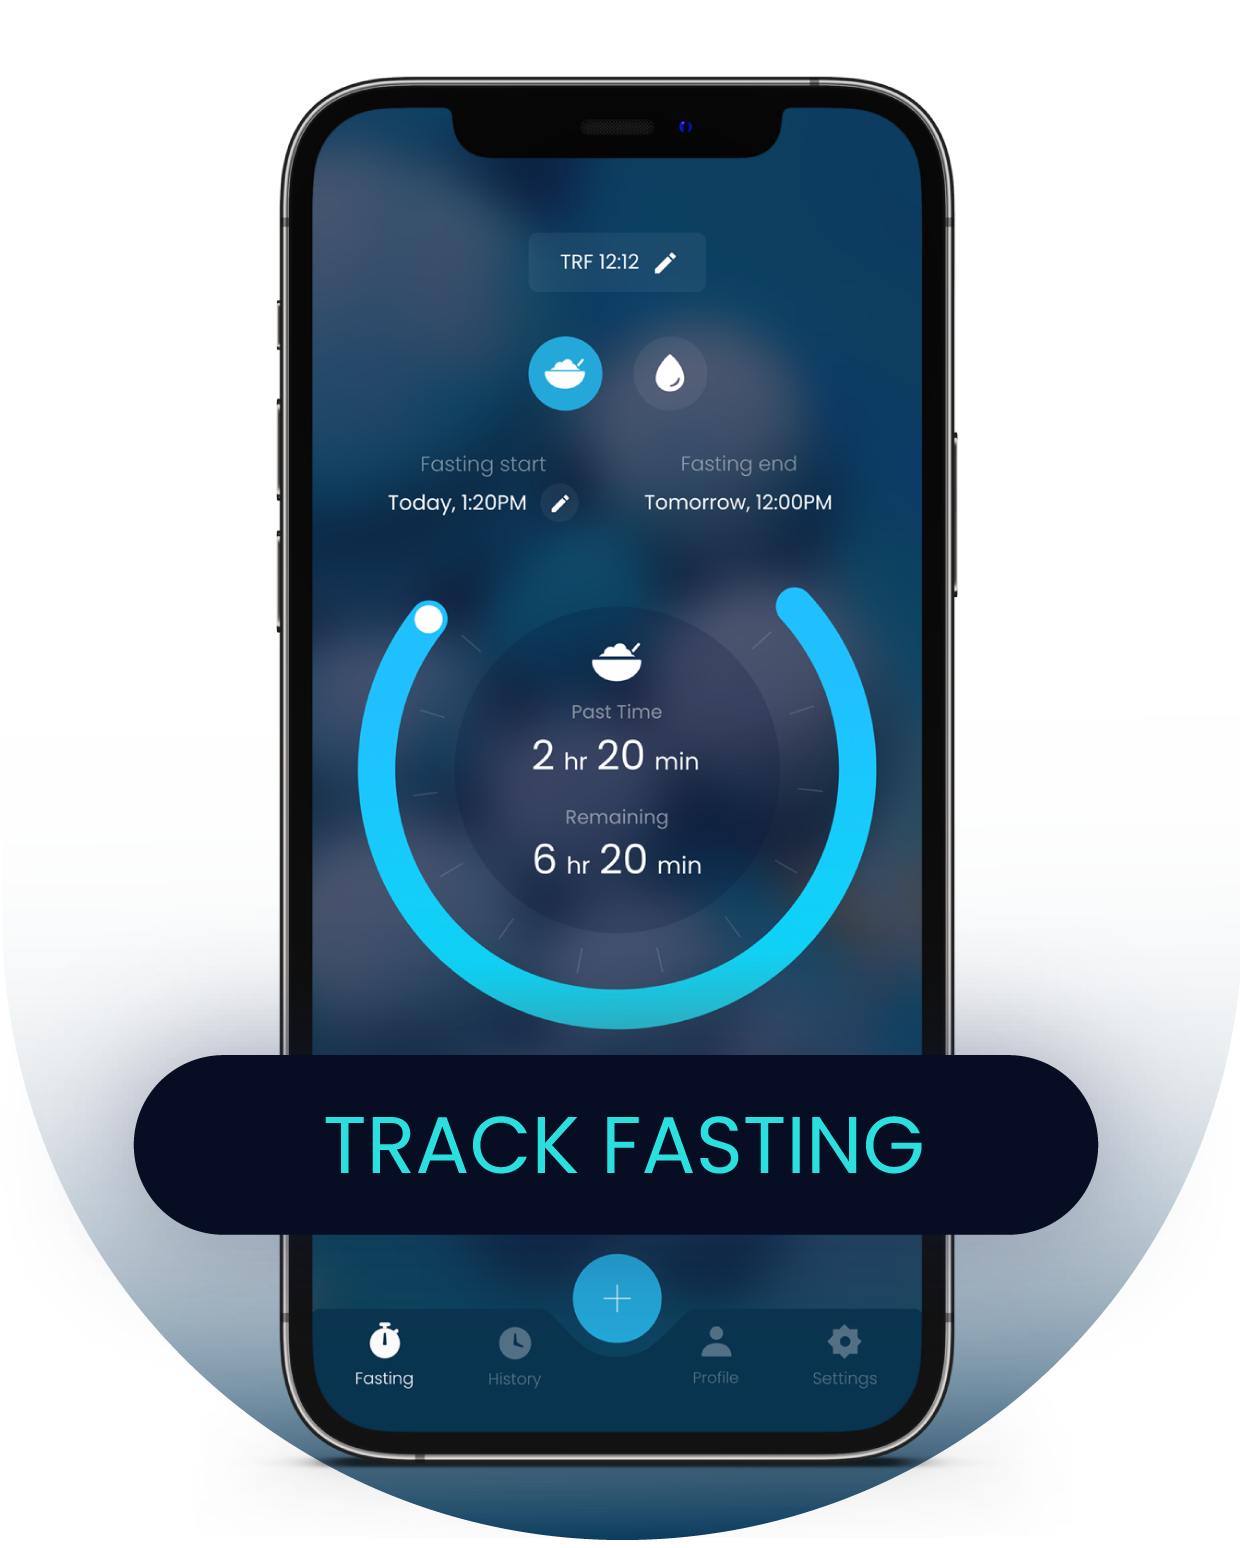 Fasting Result Tracking Calculator for iPhone Fasting App